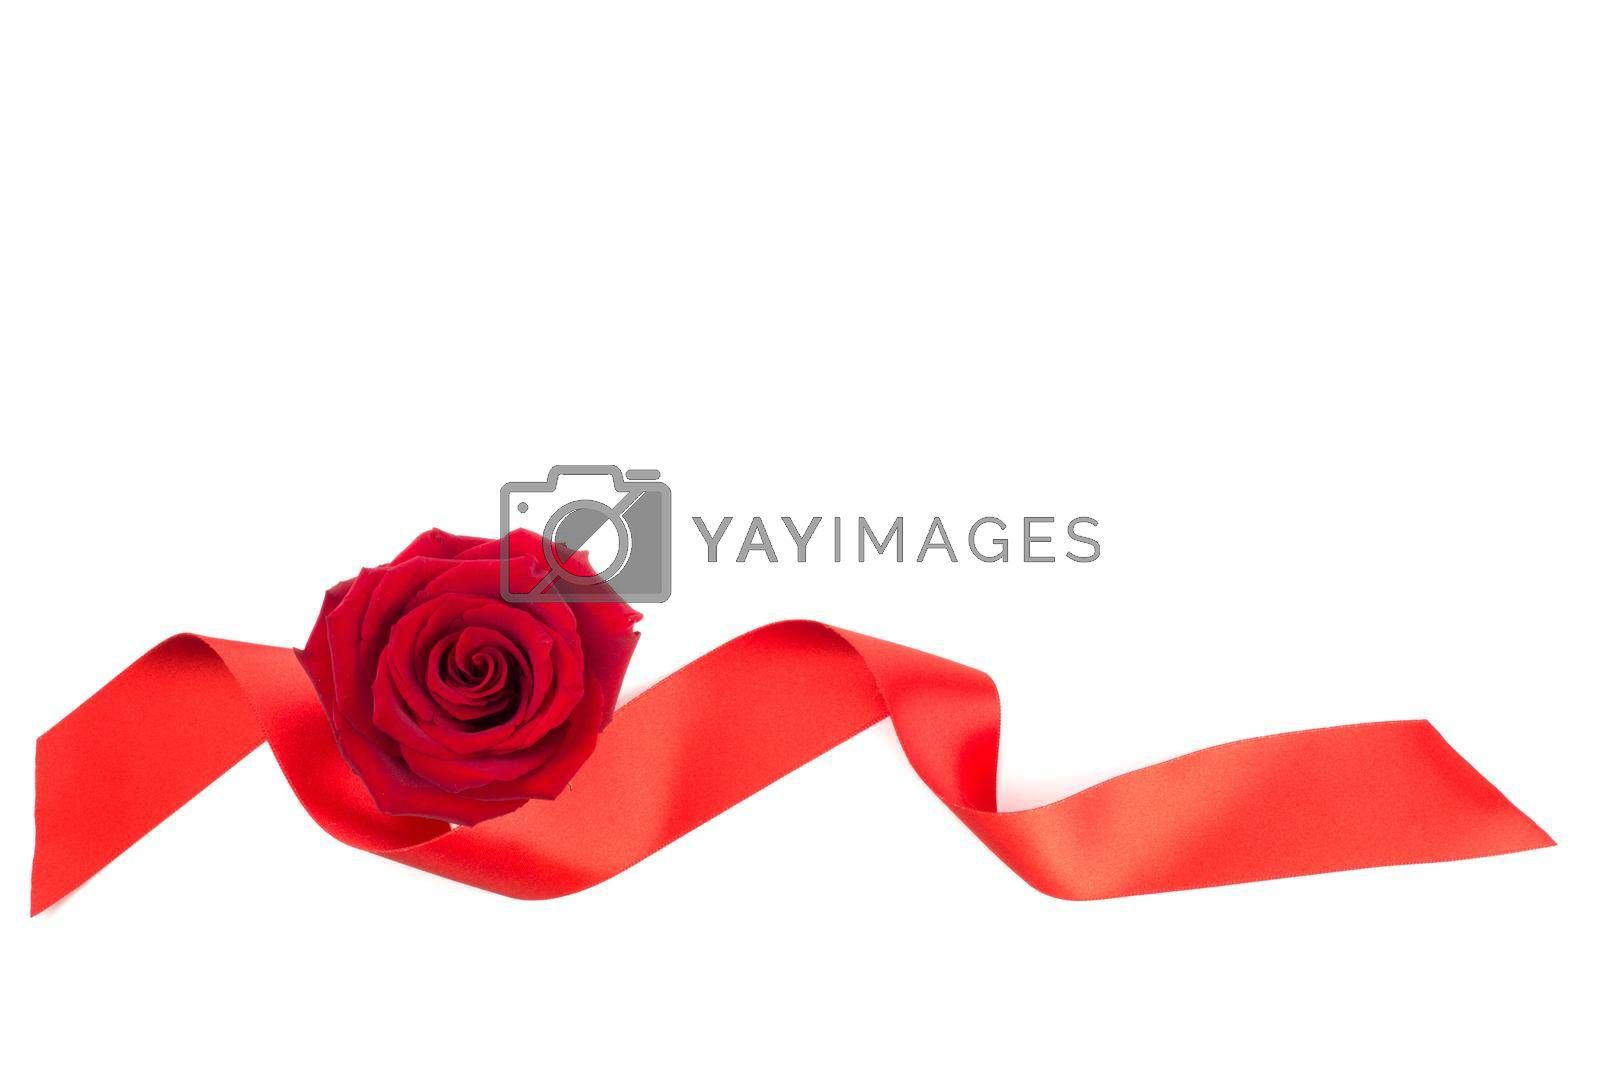 Red rose flower and ribbon arrangement isolated on white background, top view, design element for Valentines day, border frame element